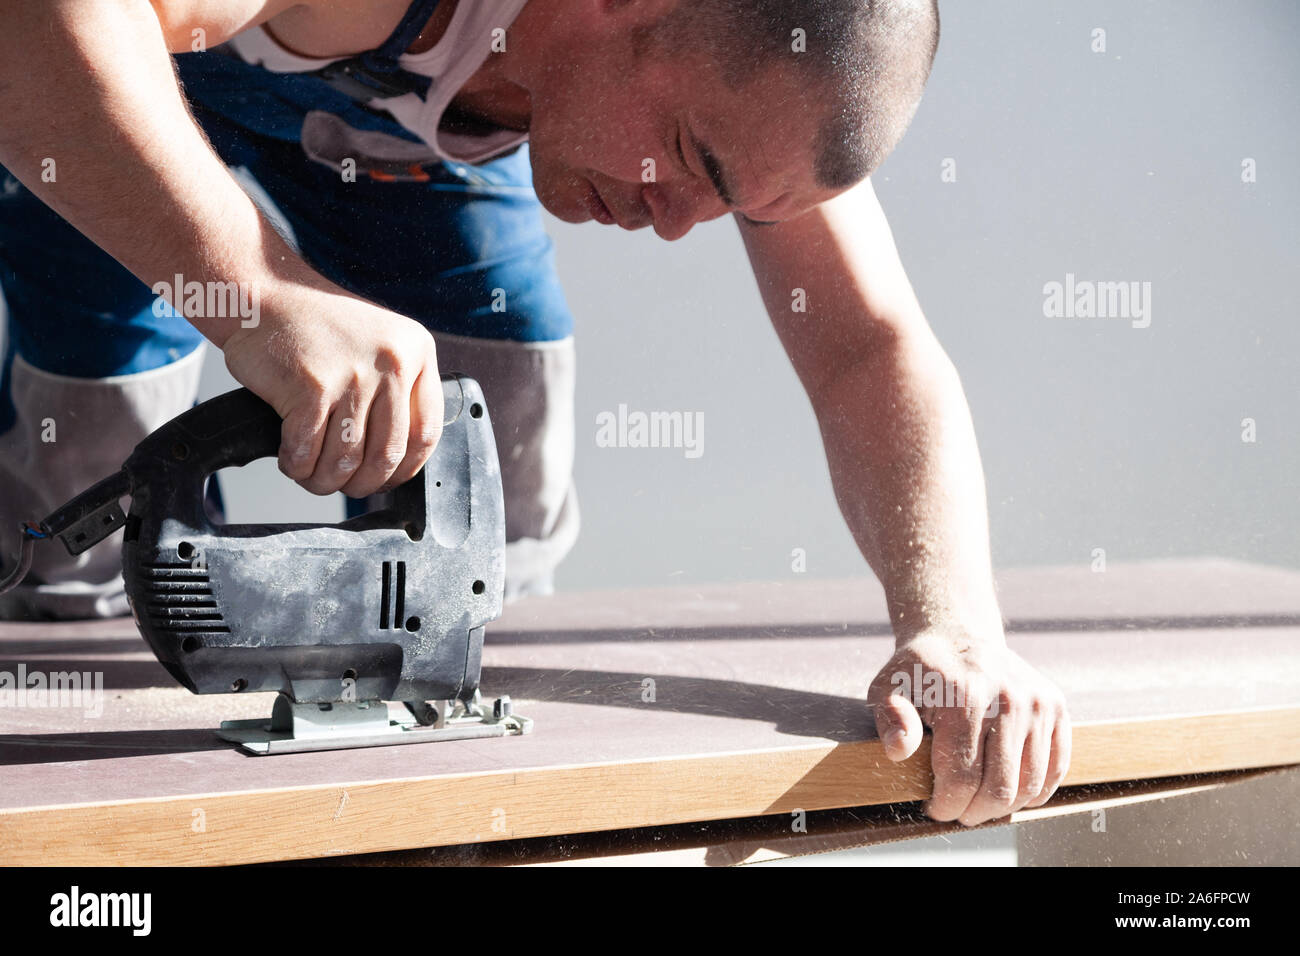 Closeup hand of carpenter, woodworker with professional cutting tool fretsaw or jigsaw, cut wooden tabletop, sawing plank, brown filings, sawdust. Con Stock Photo